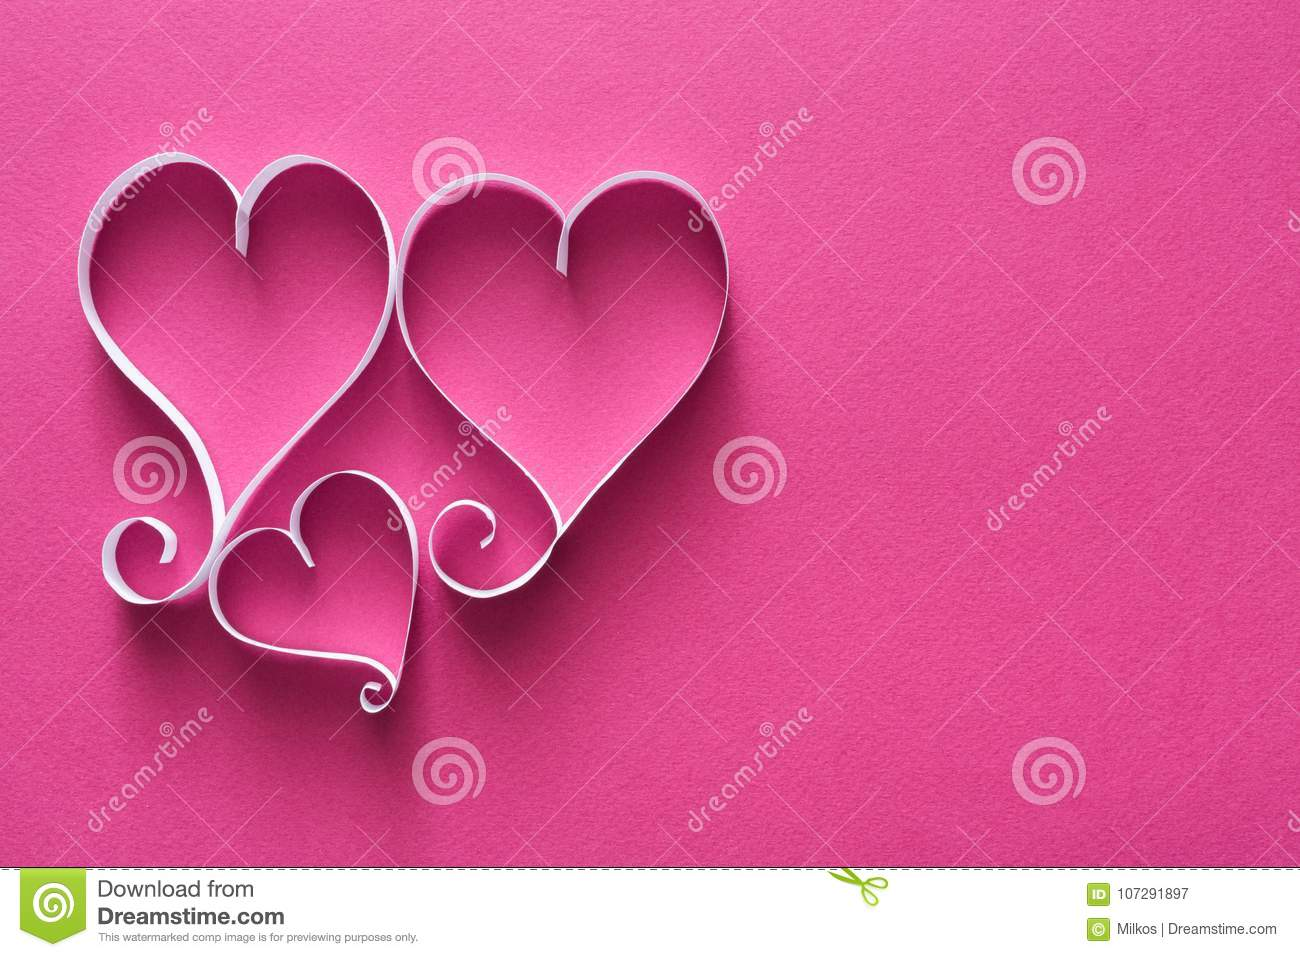 Valentine Background With Handmade Paper Heart Shapes